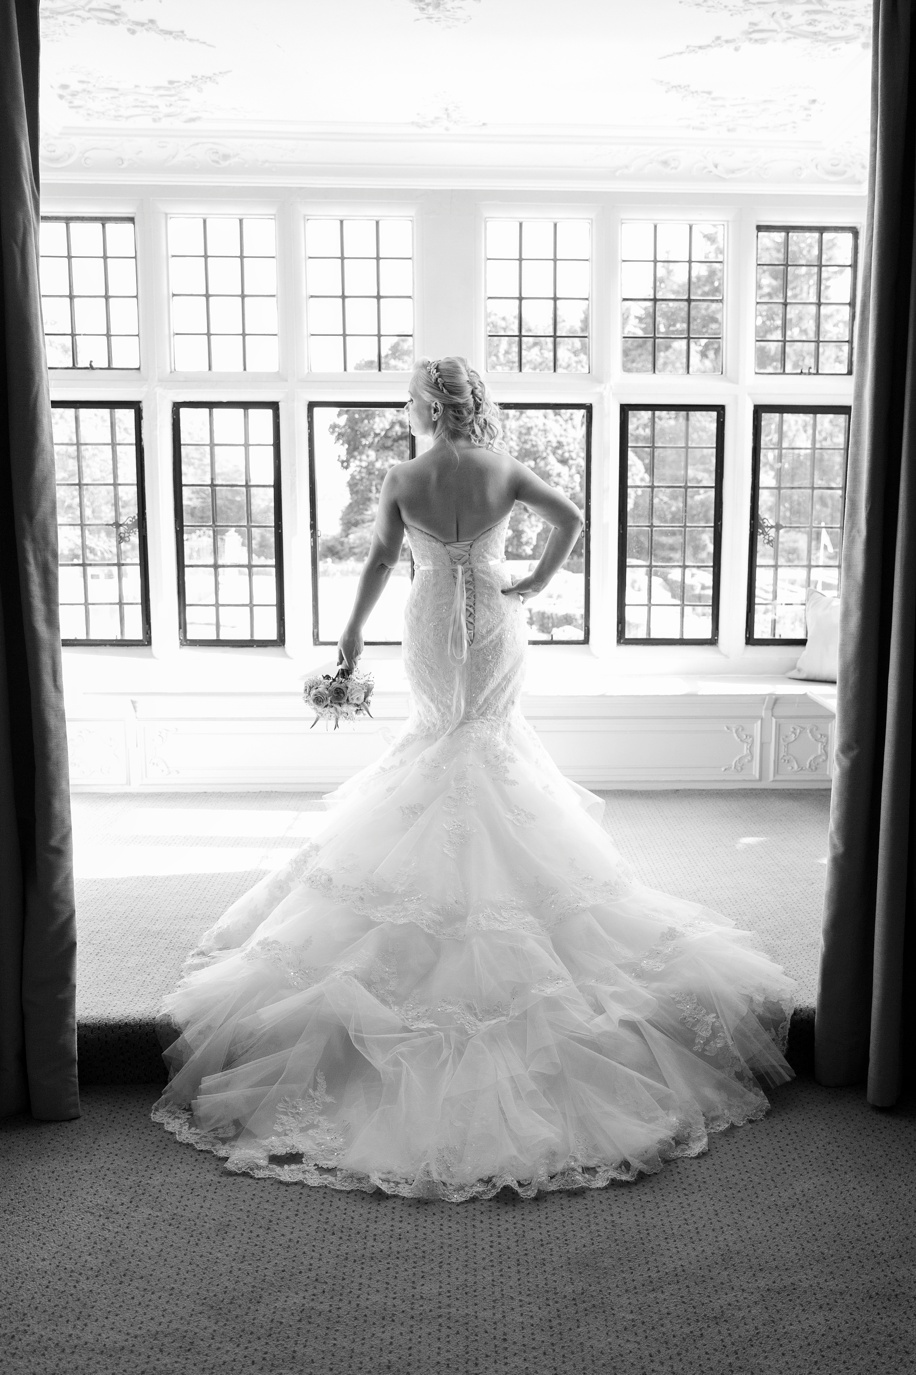 Beautiful Bride portrait photograph in the Walker Suite during an intimate Rhinefield House wedding